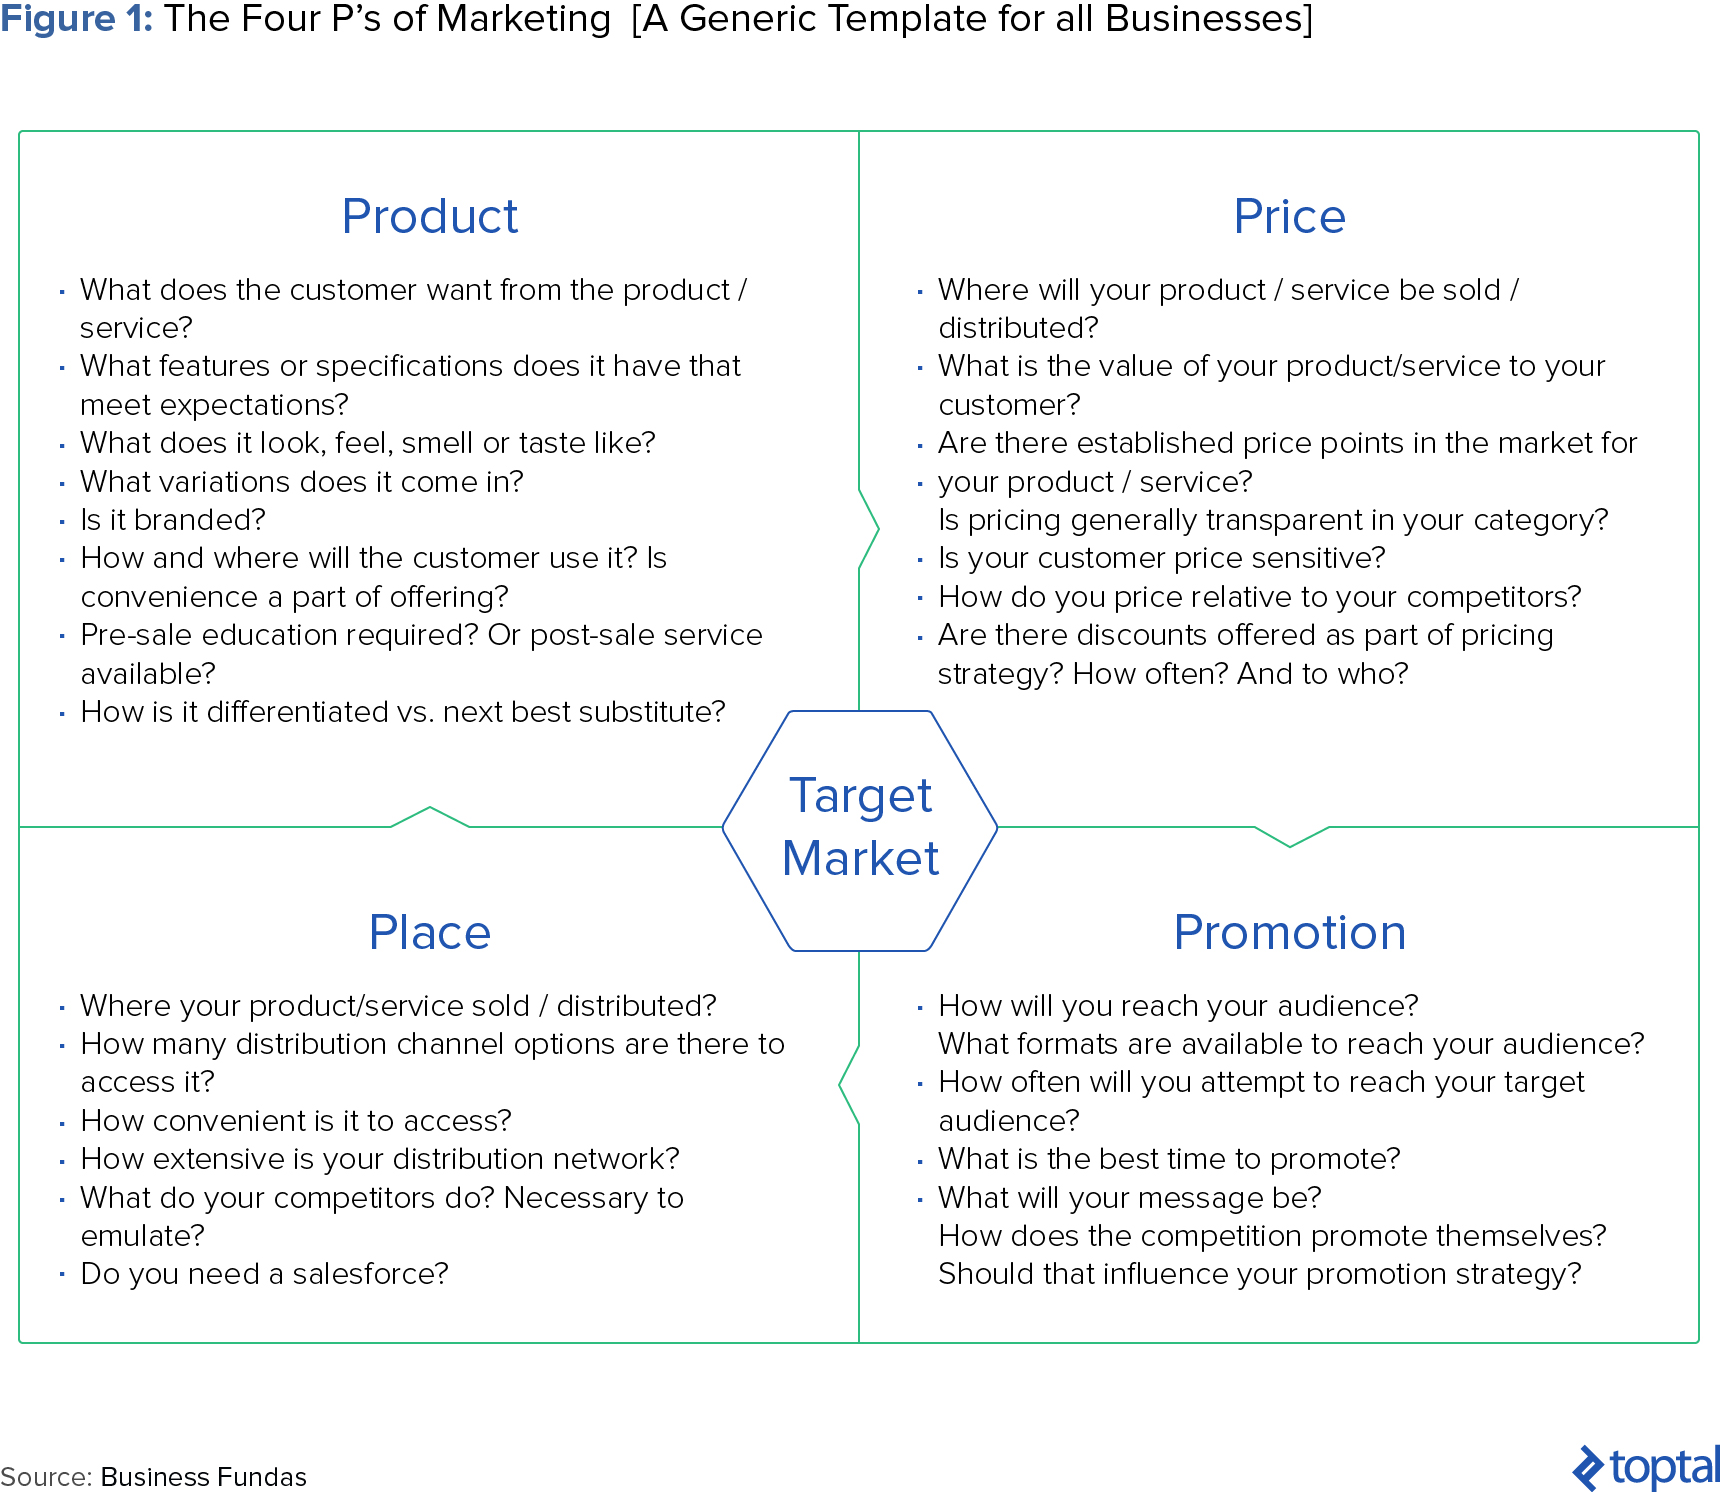 Figure 1: The Four P's of Marketing (A Generic Template for all Businesses)